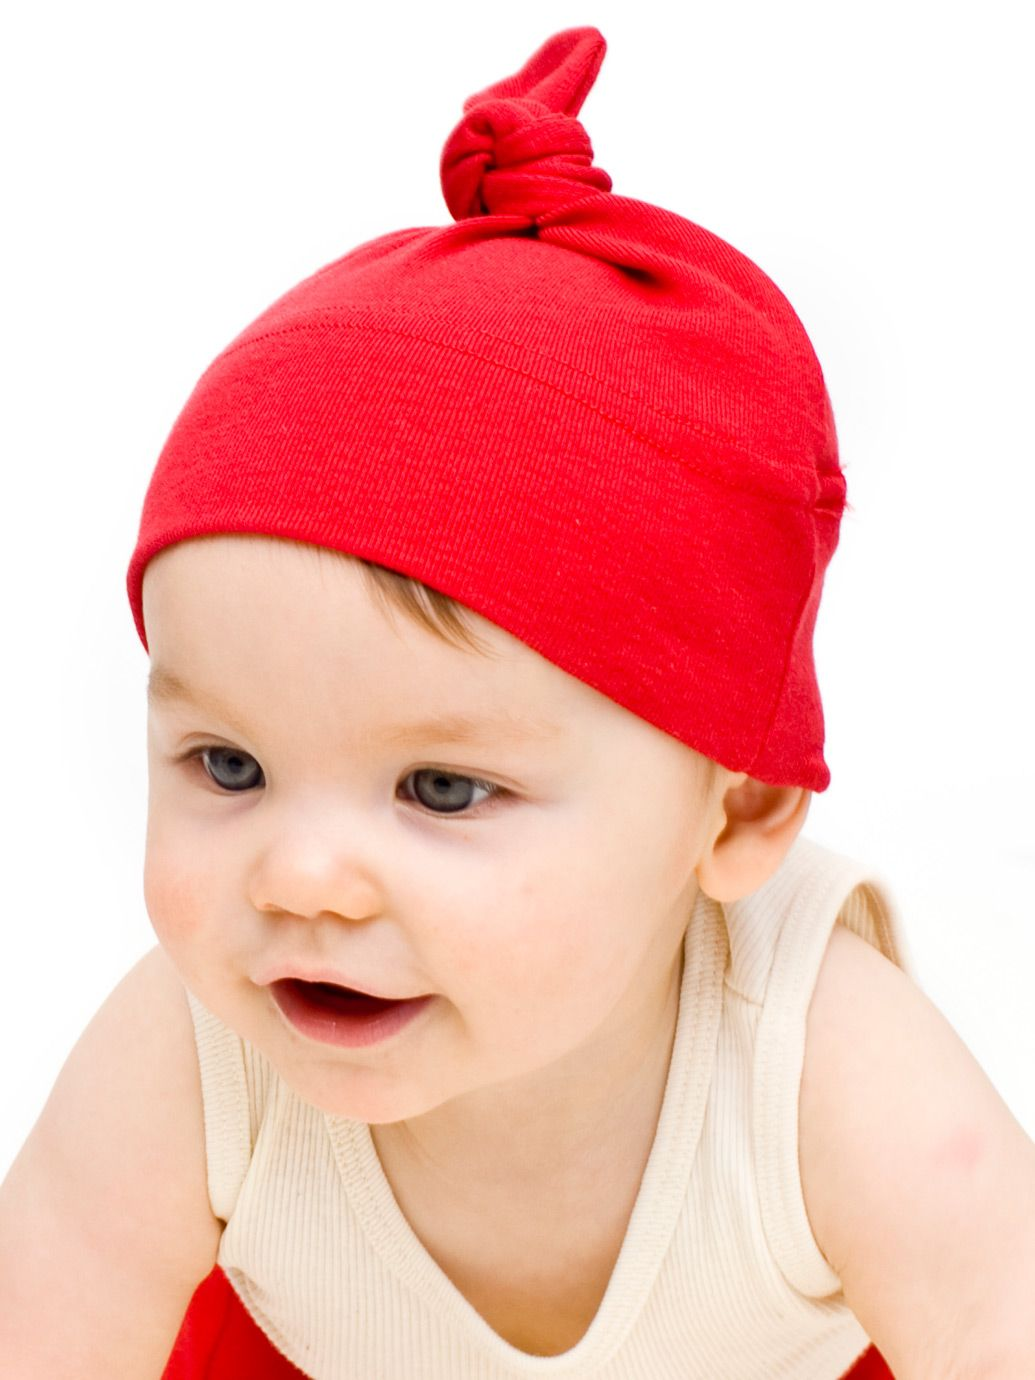 American Arel Infant Baby Rib Hat Evan Ster Ink cd5fc4f311e